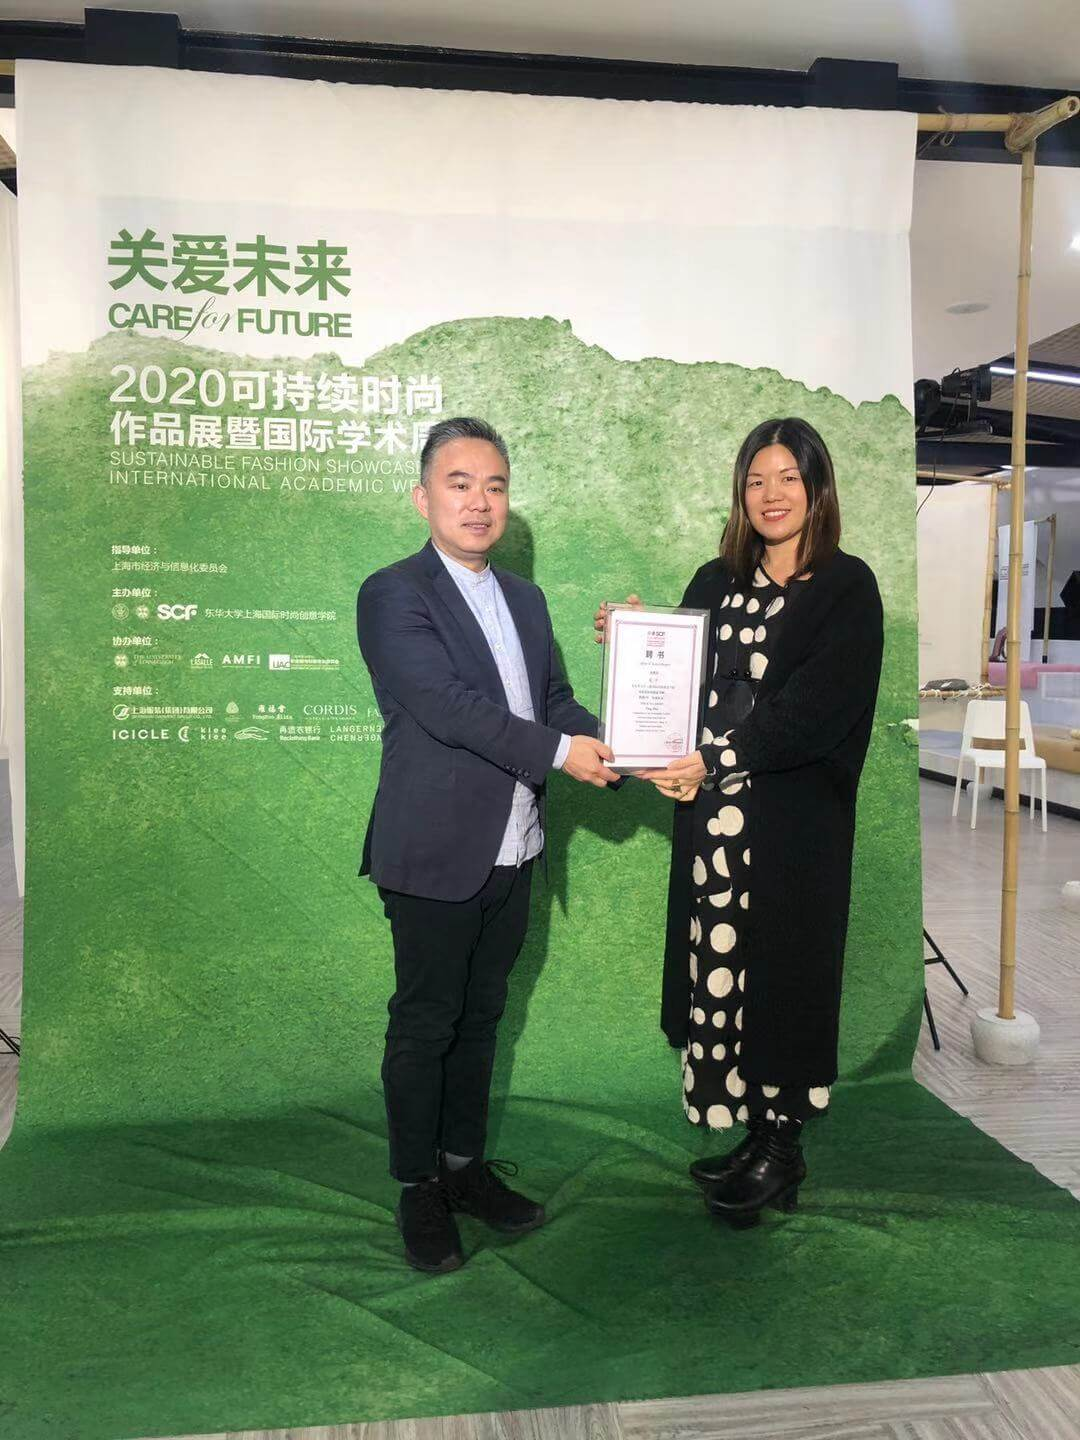 Ms. Zhu Ping has been appointed as Sustainable Fashion and Innovation Supervisor of Shanghai International College of Fashion and Innovation (SCF), Donghua University